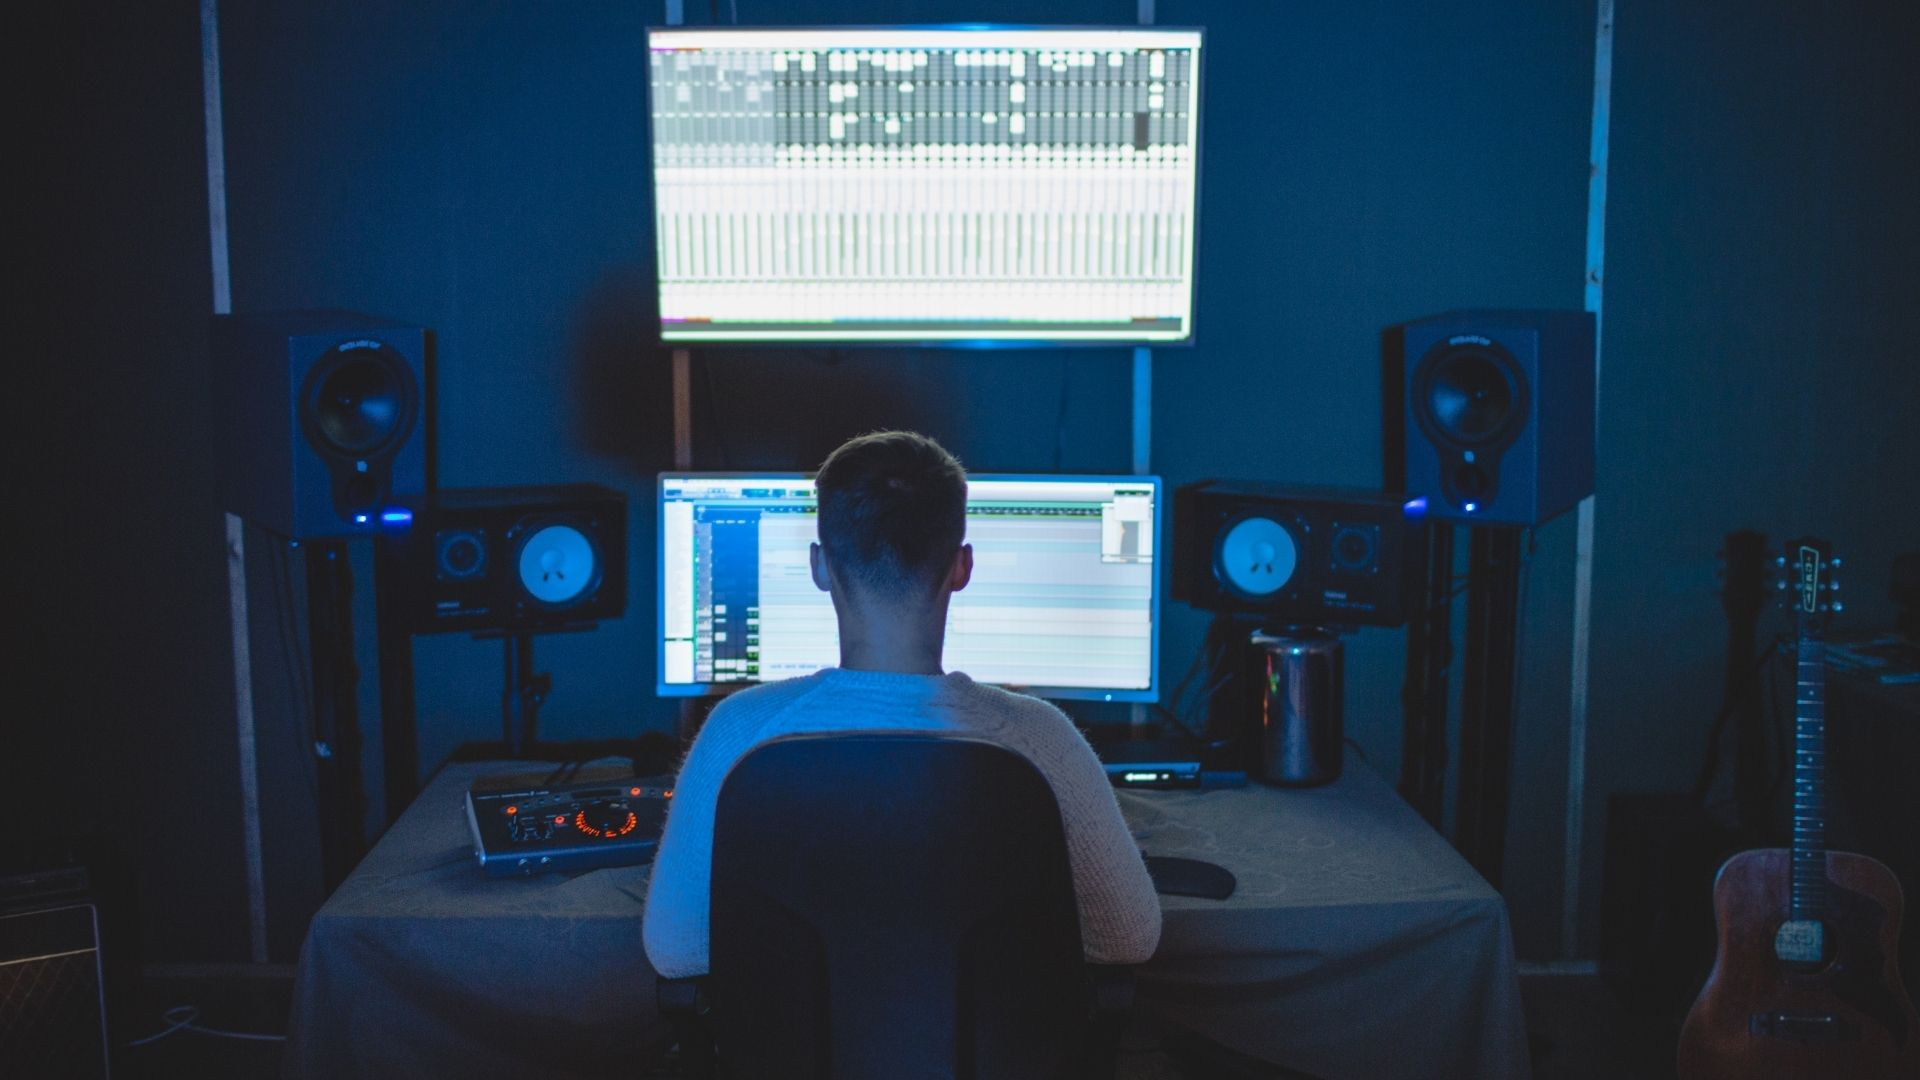 music_producer_from_the_back_blue_lighting